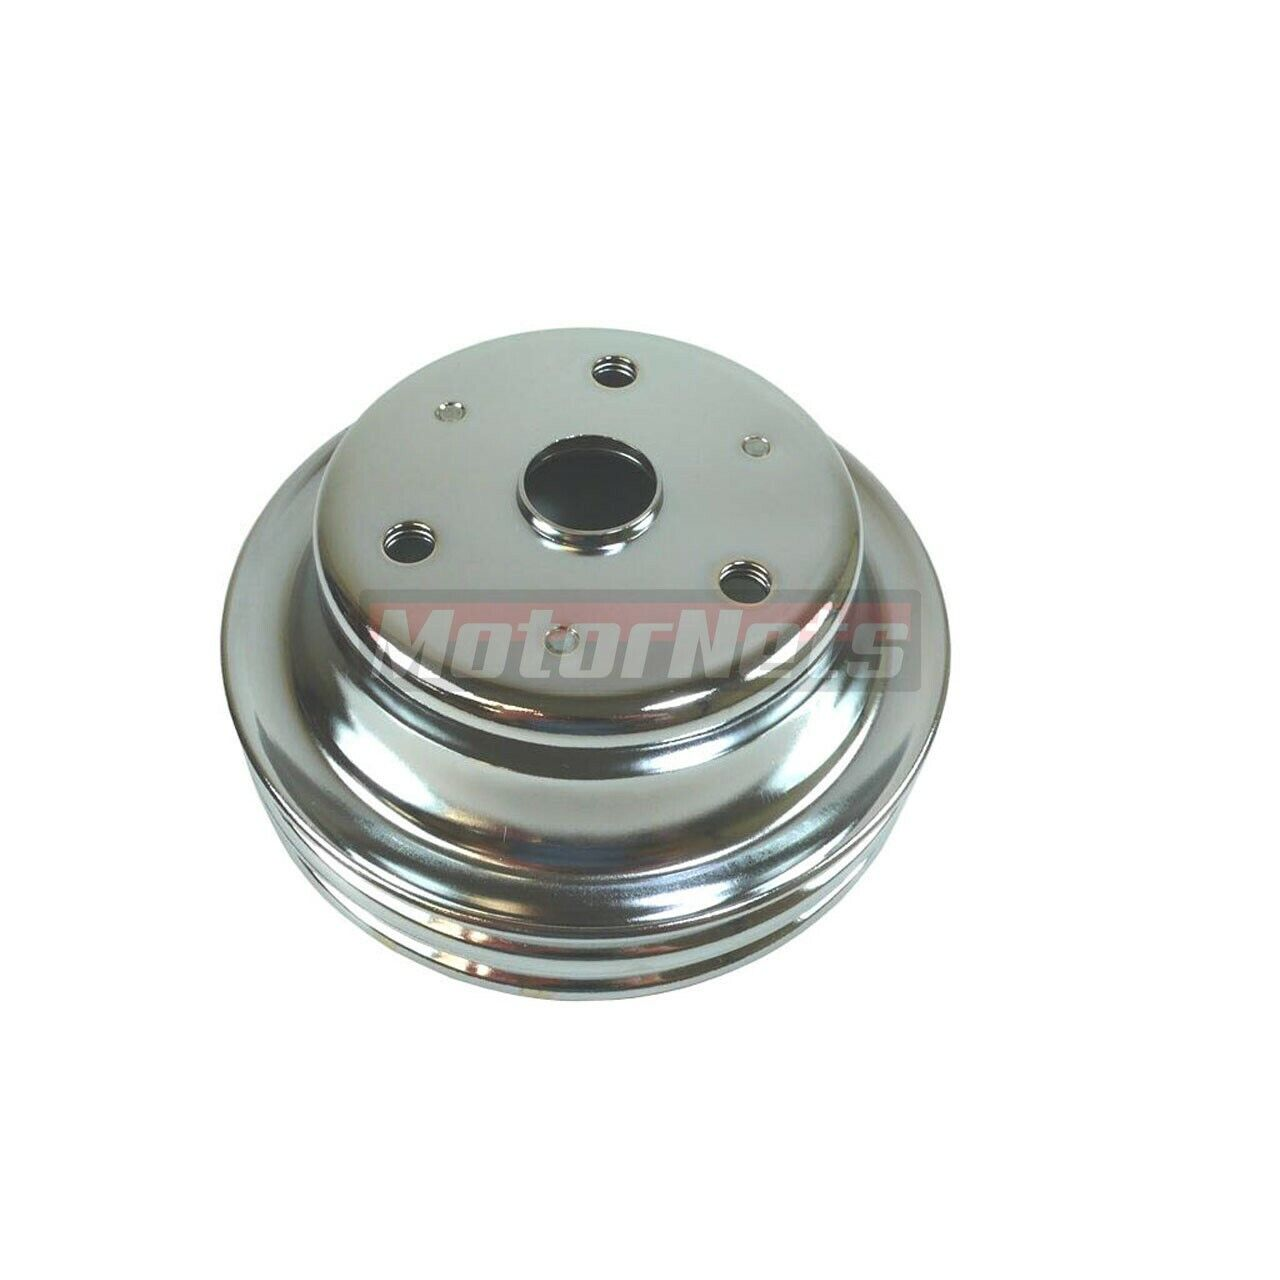 Crankshaft Pulley 3 Groove for SB Chevy 283 327 350 with Short Waterpump Chrome